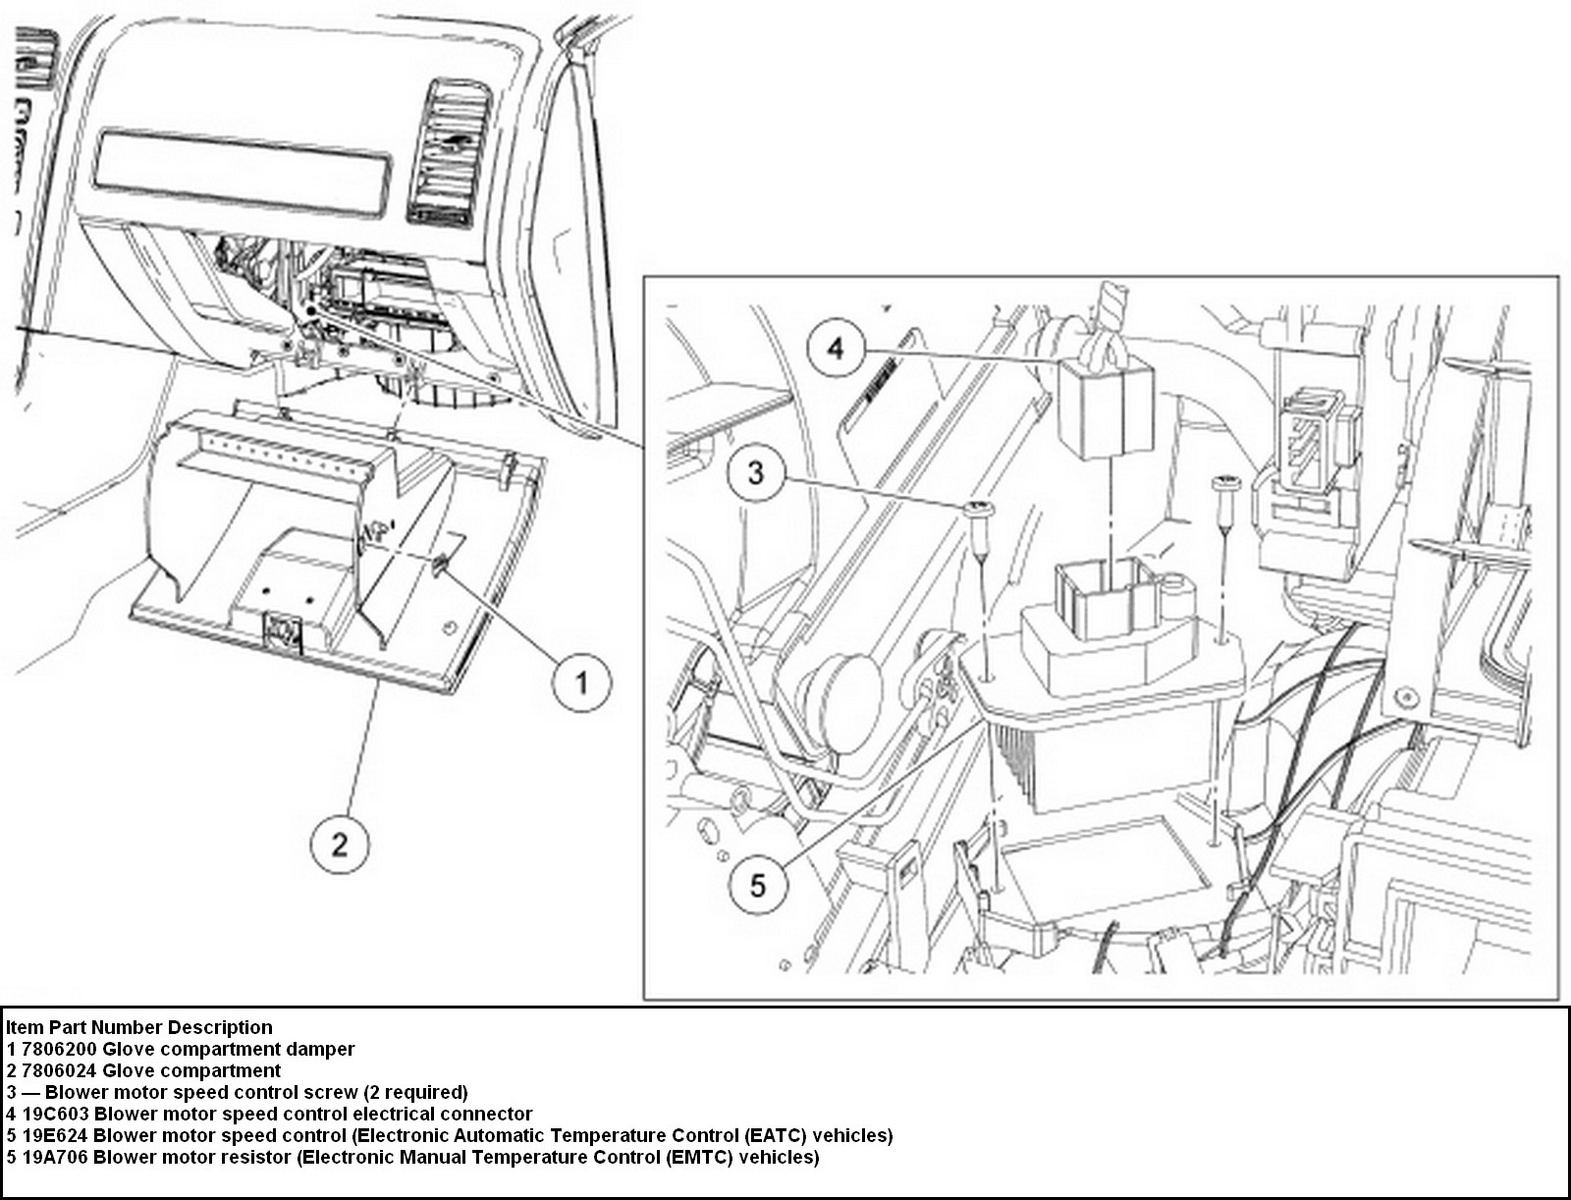 2012 Ford Focus 2 0l Engine Diagram Wiring Library. Ford. Ford Focus Fuel Filter System Diagram At Scoala.co